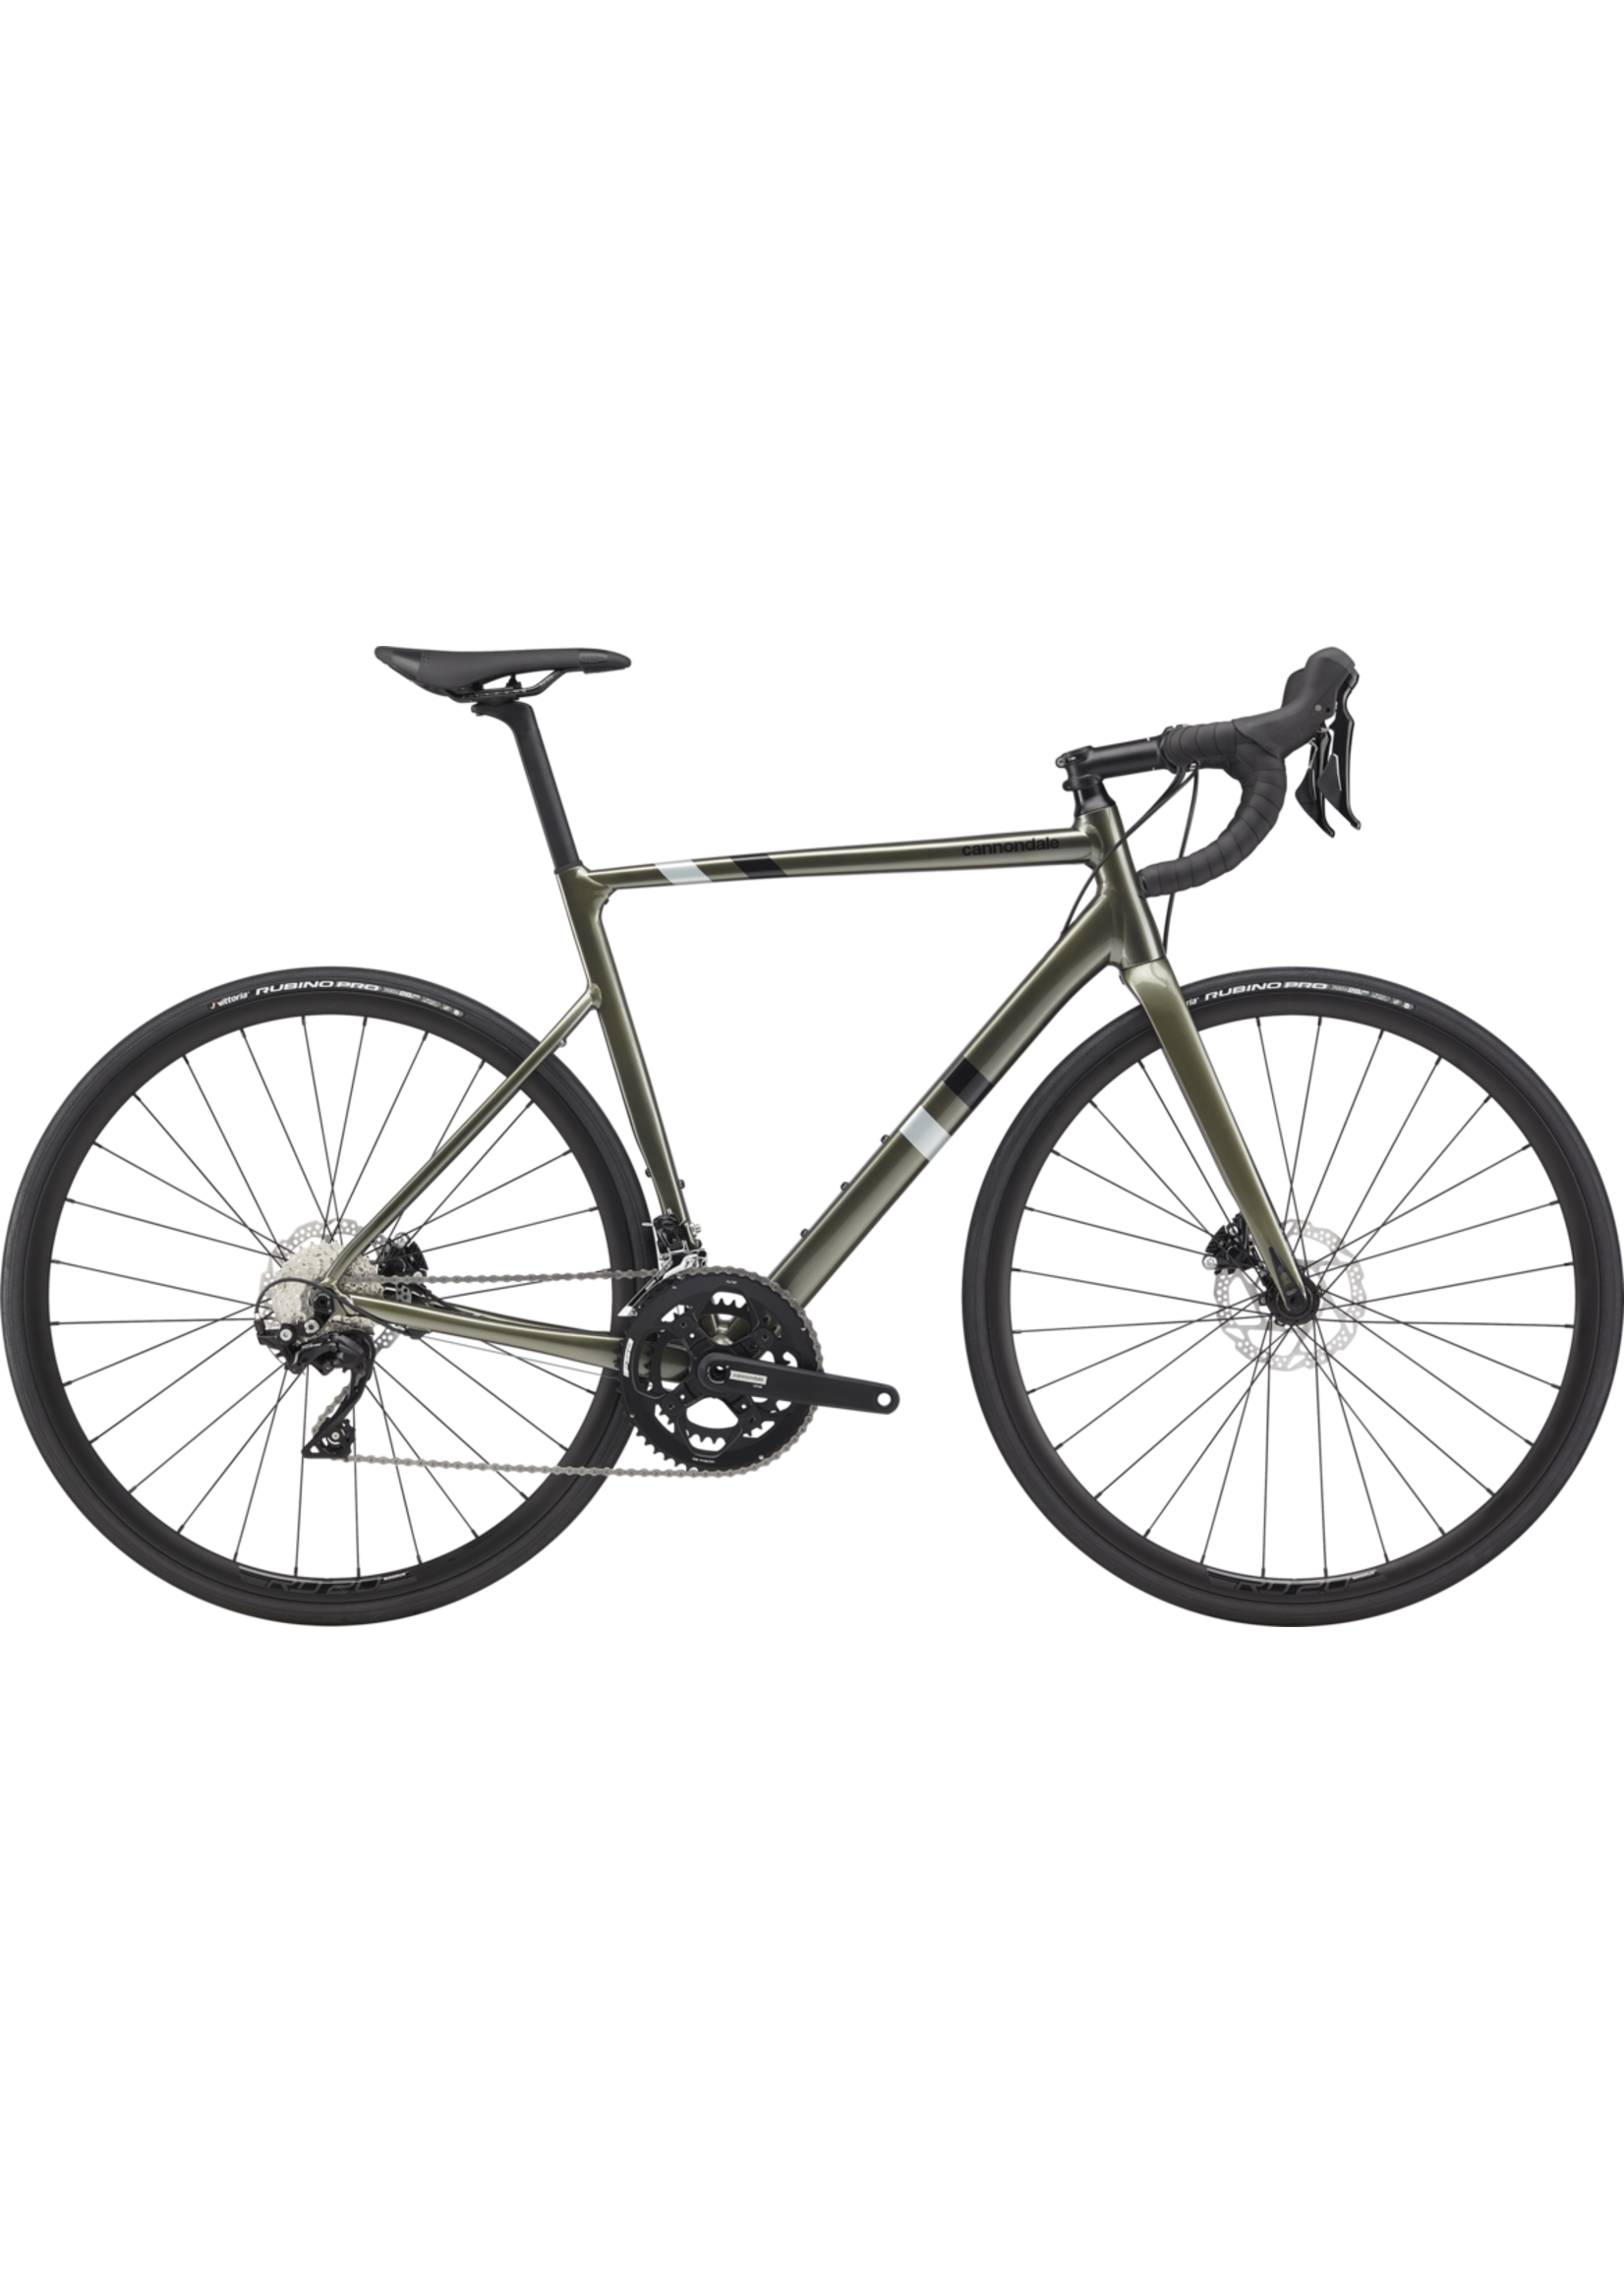 CANNONDALE CAAD 13 105 DISC 54 20 (USED)